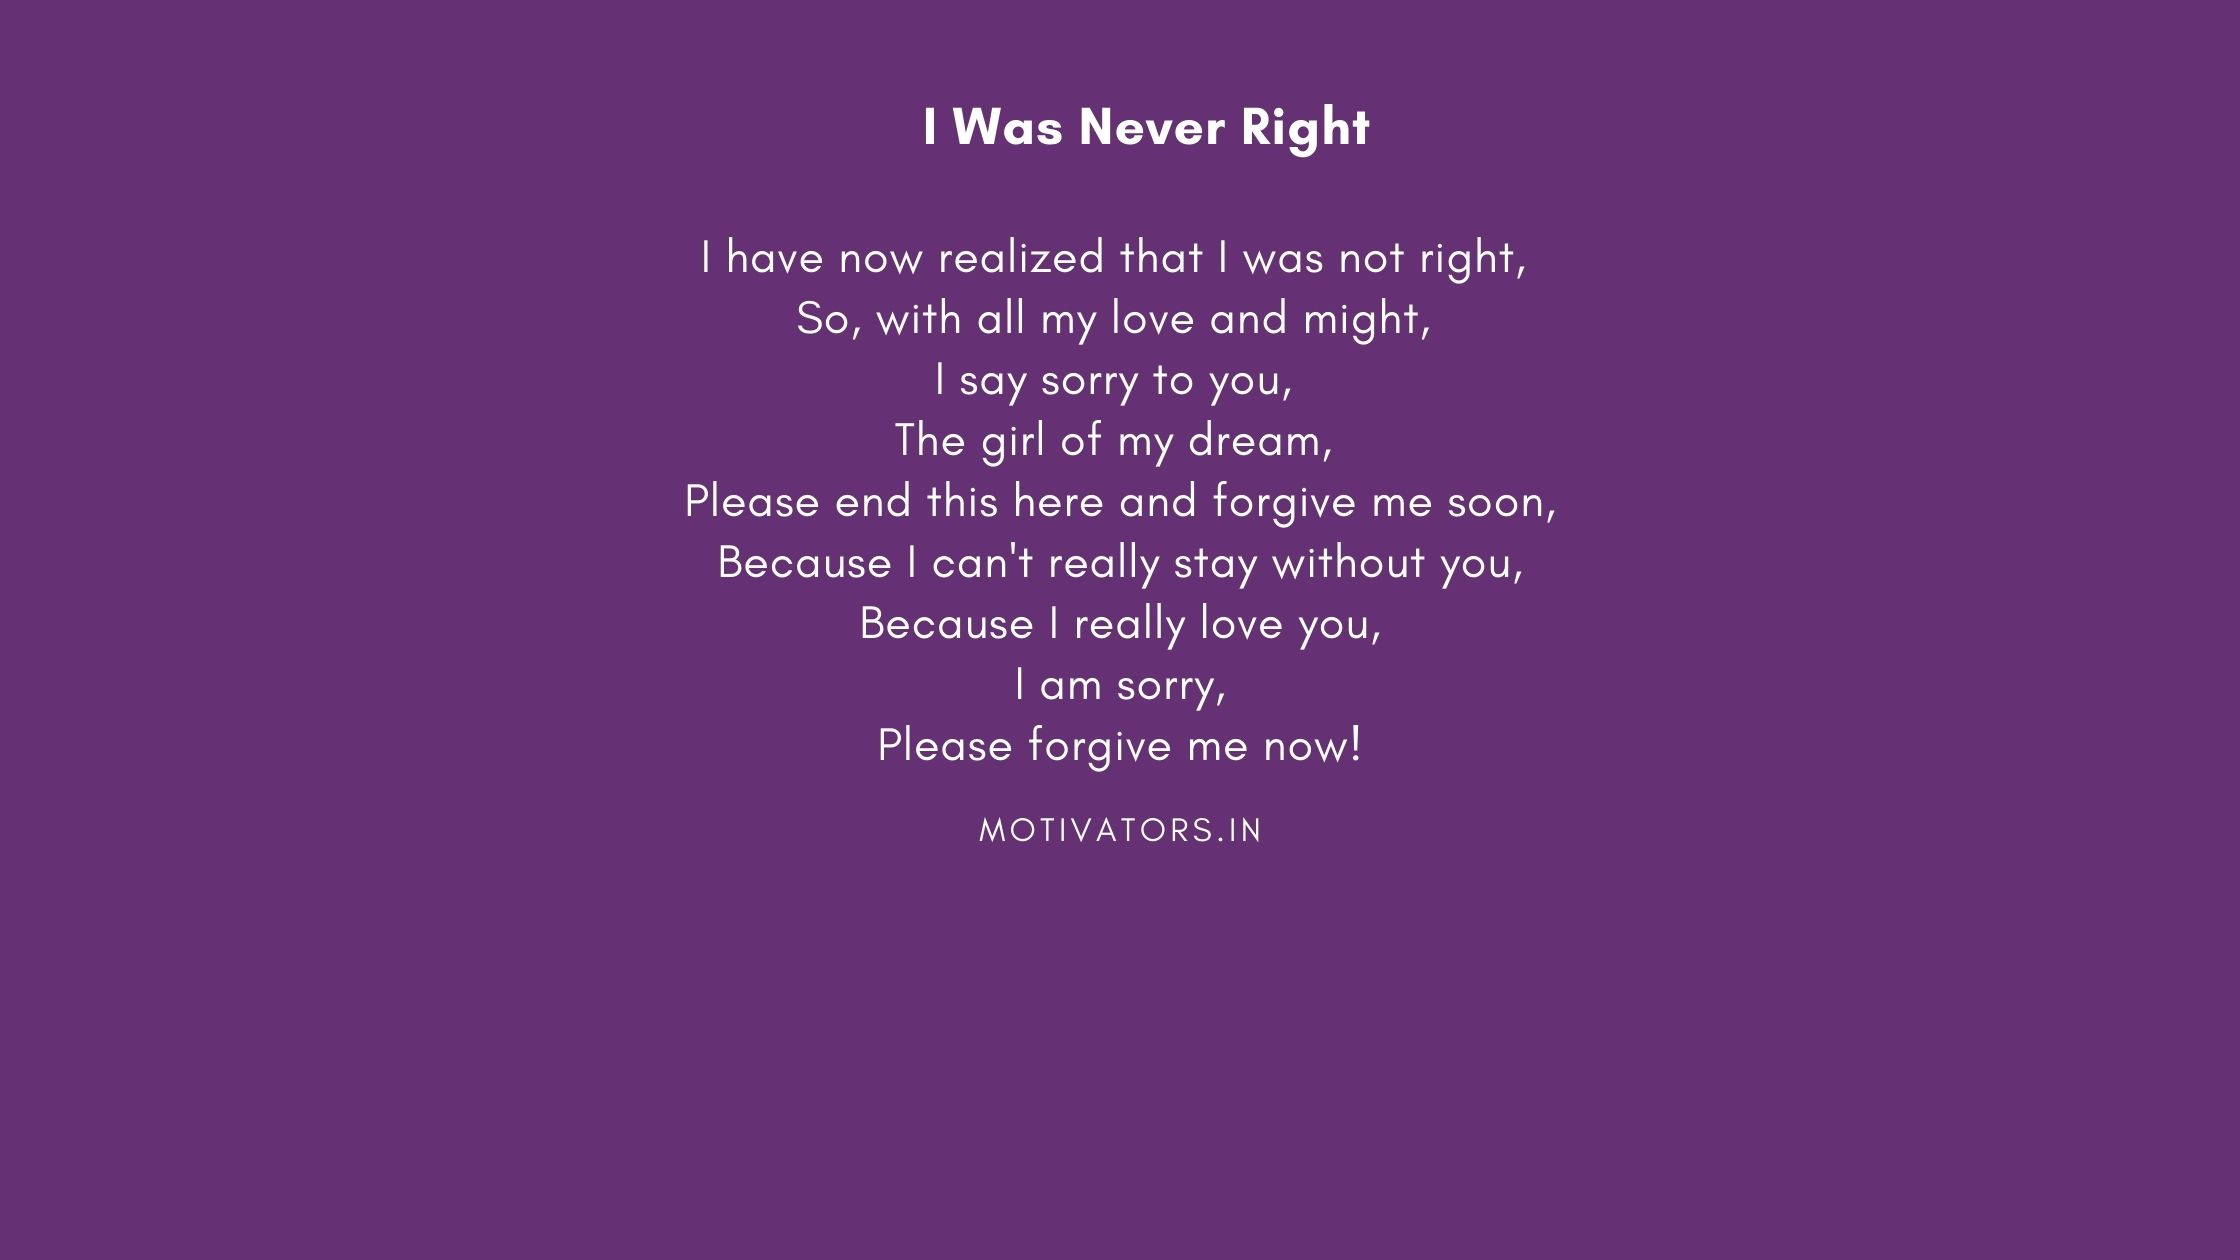 I Was Never Right